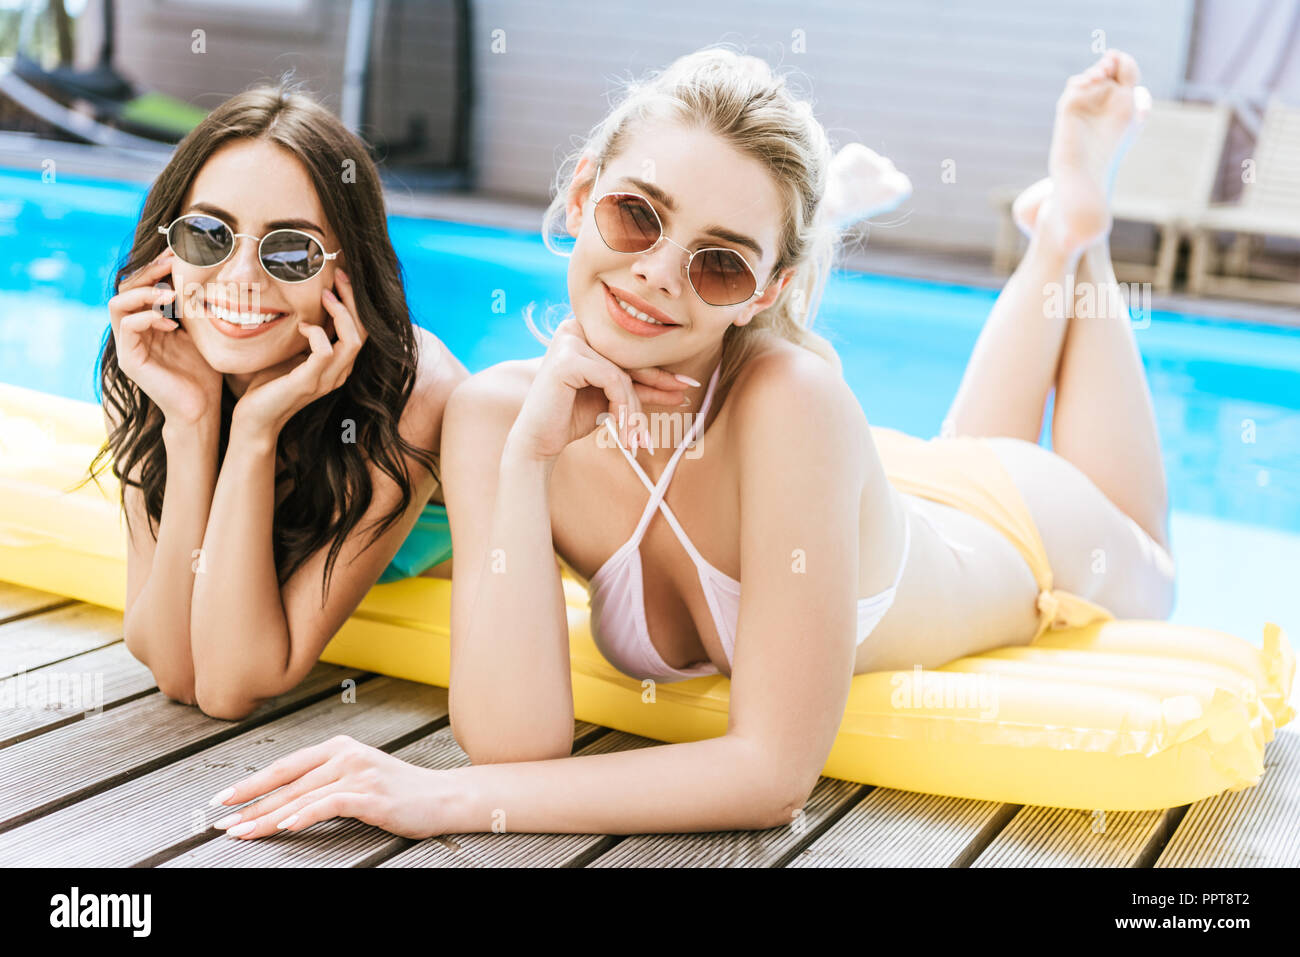 beautiful young women in sunglasses and swimwear lying on inflatable mattress and smiling at camera near swimming pool - Stock Image